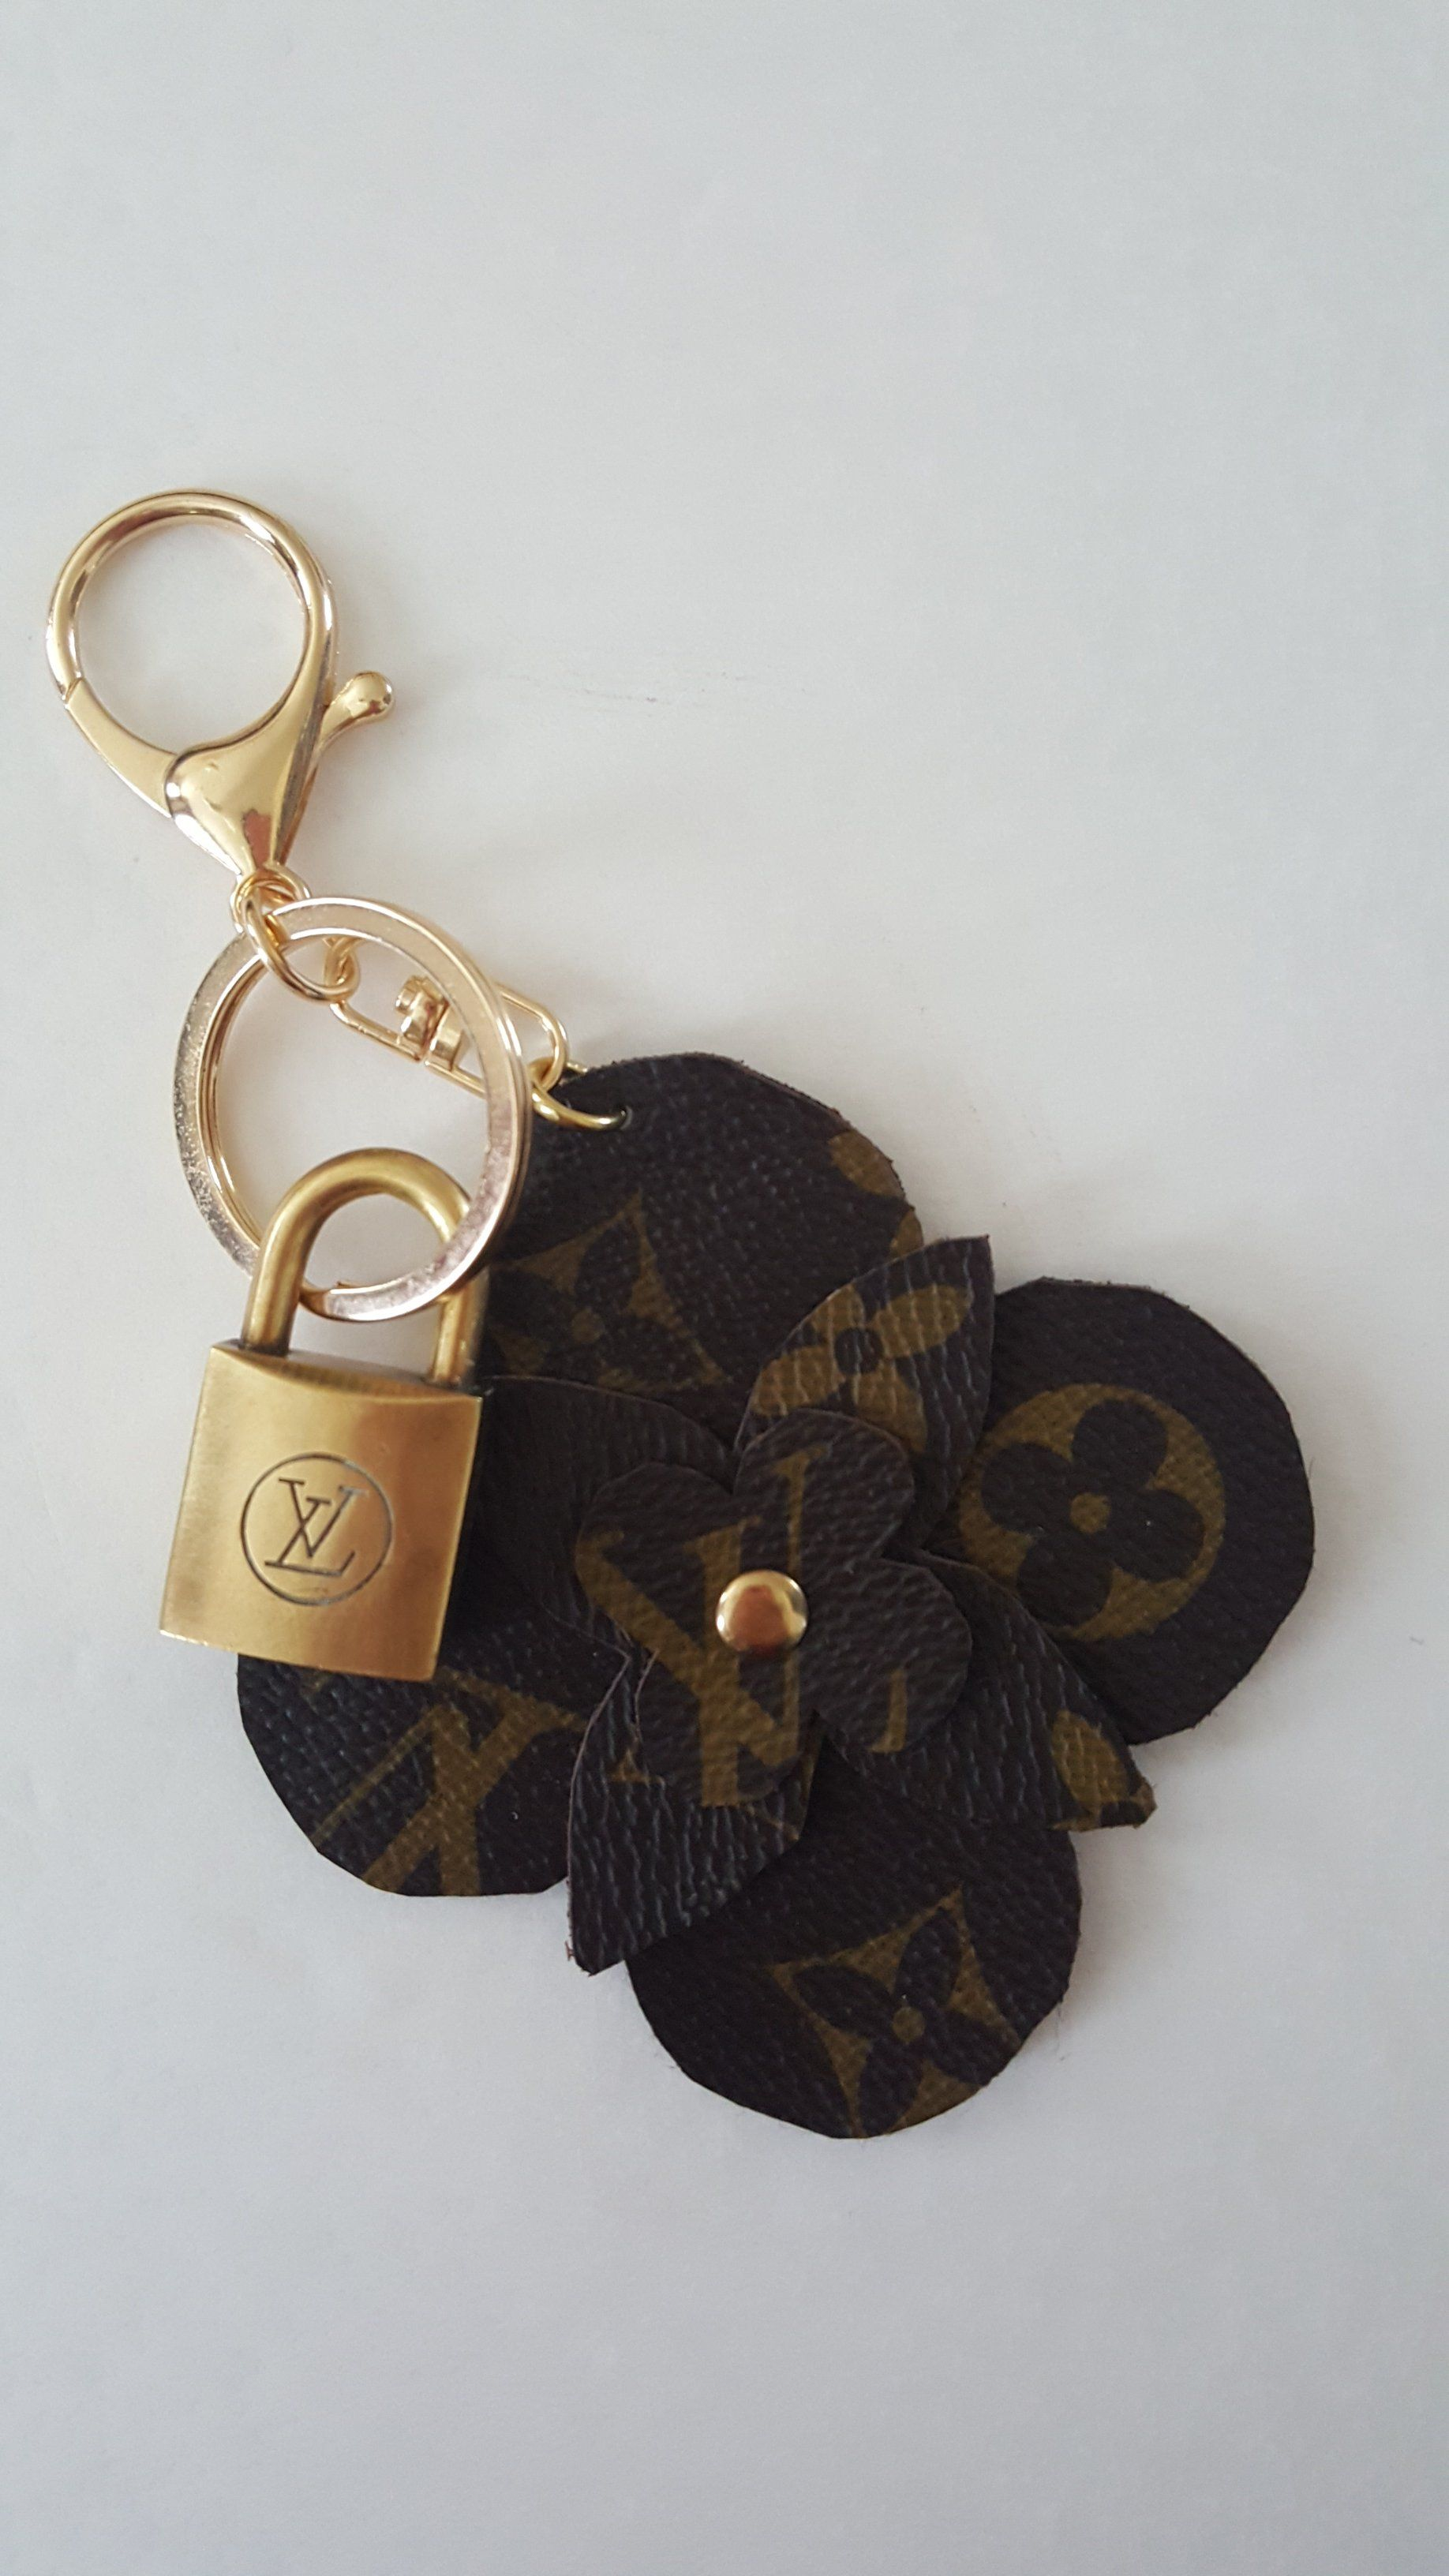 58a3422fa47a Louis Vuitton (reworked) Bag Charm | Key Ring w/ vintage lock | Keychain |  Handmade from Repurposed LV Canvas